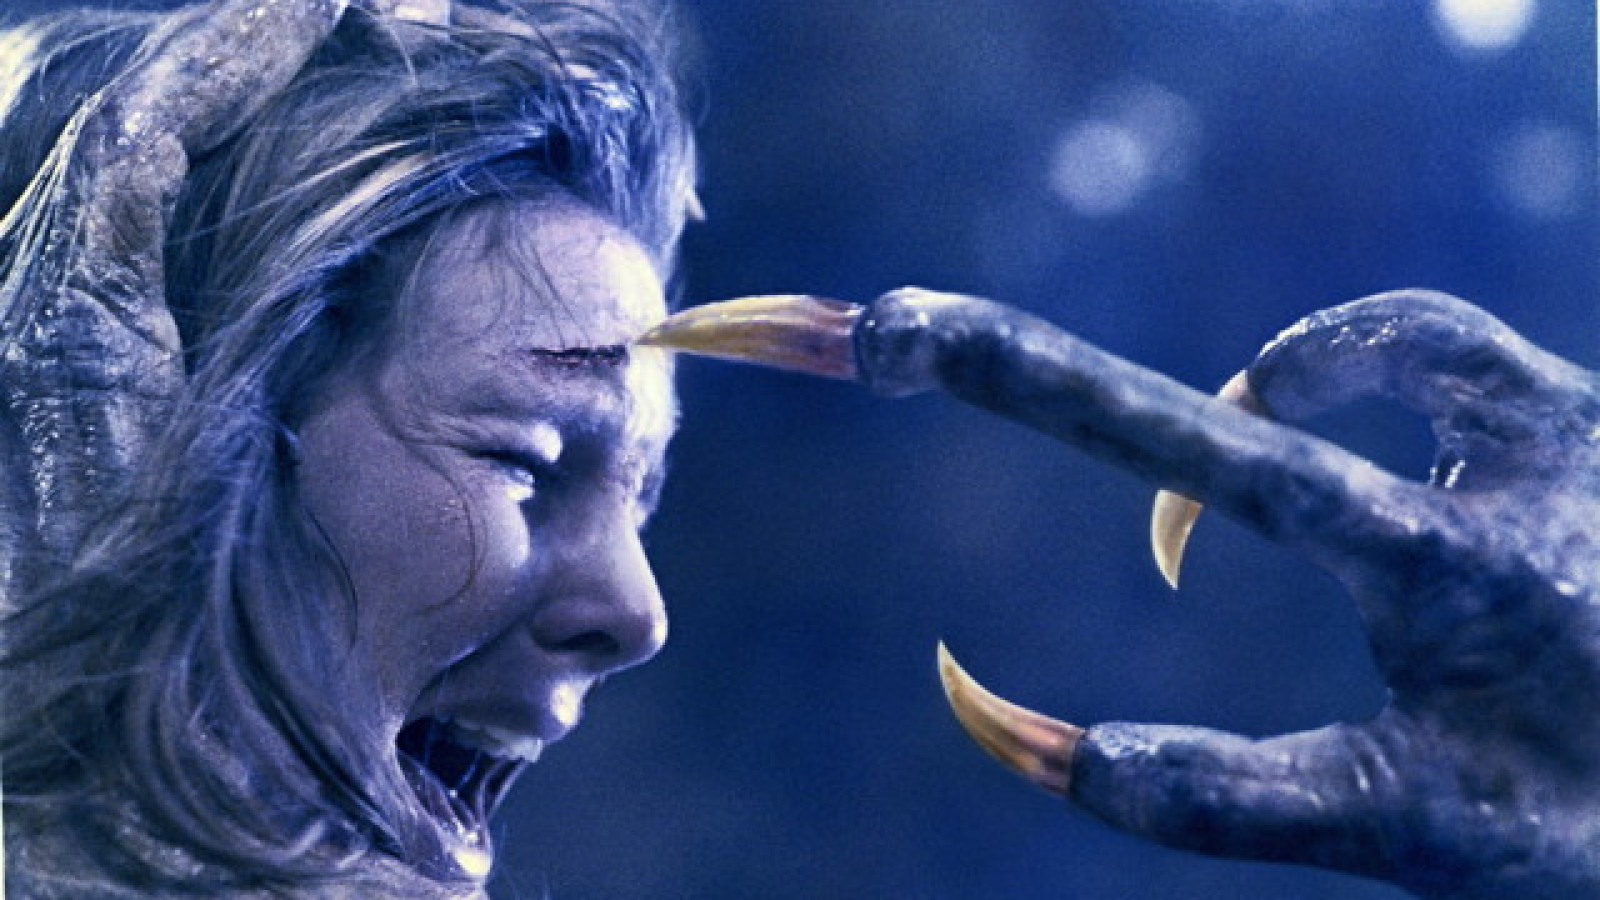 This is a still from the movie Pumpkinhead.